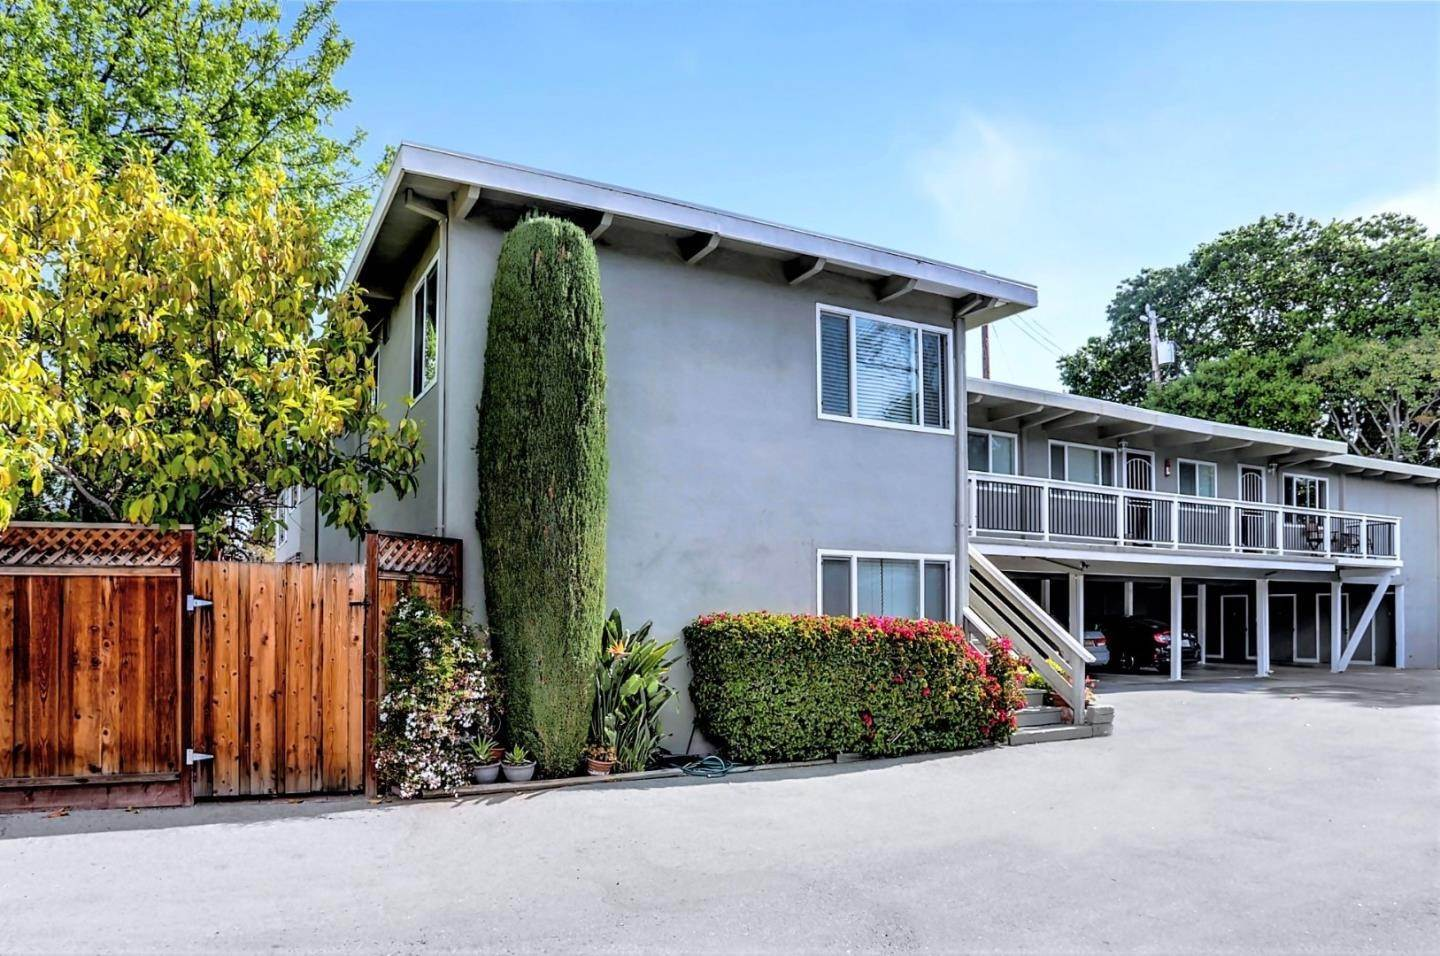 Multi-Family Homes for Sale at 4 Coleman Place Menlo Park, California 94025 United States